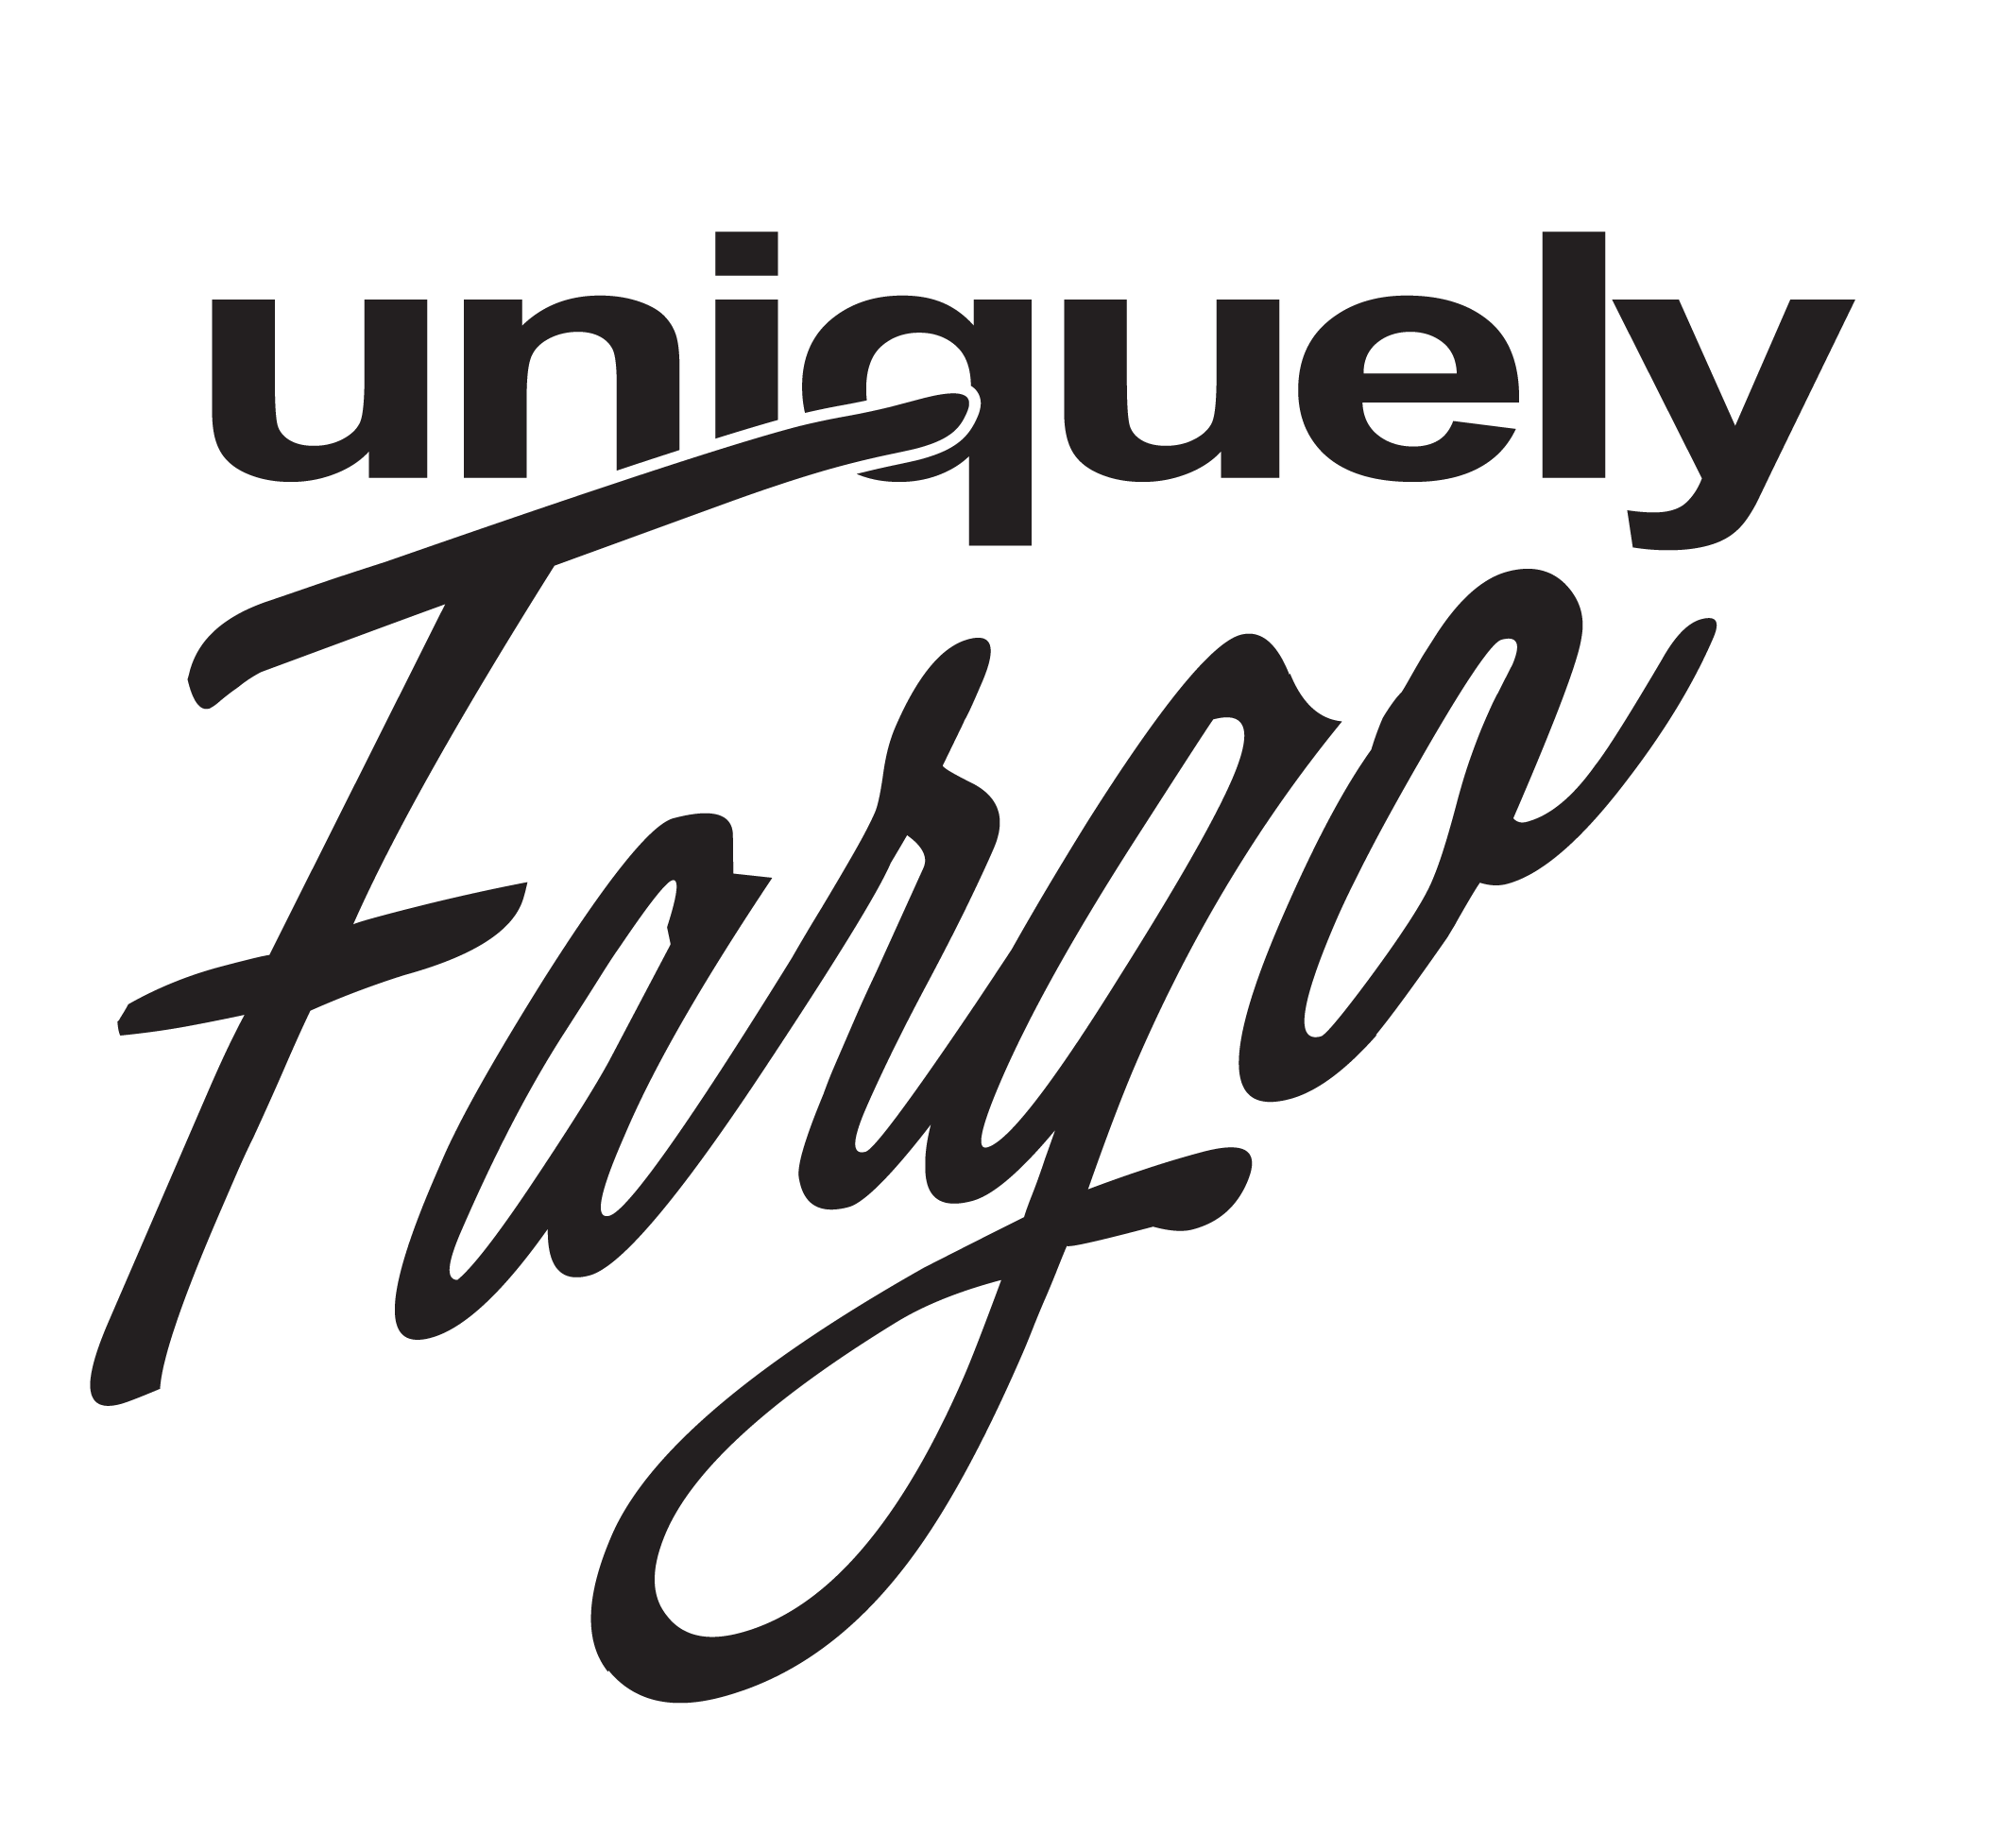 This image shows a Uniquely Fargo logo.